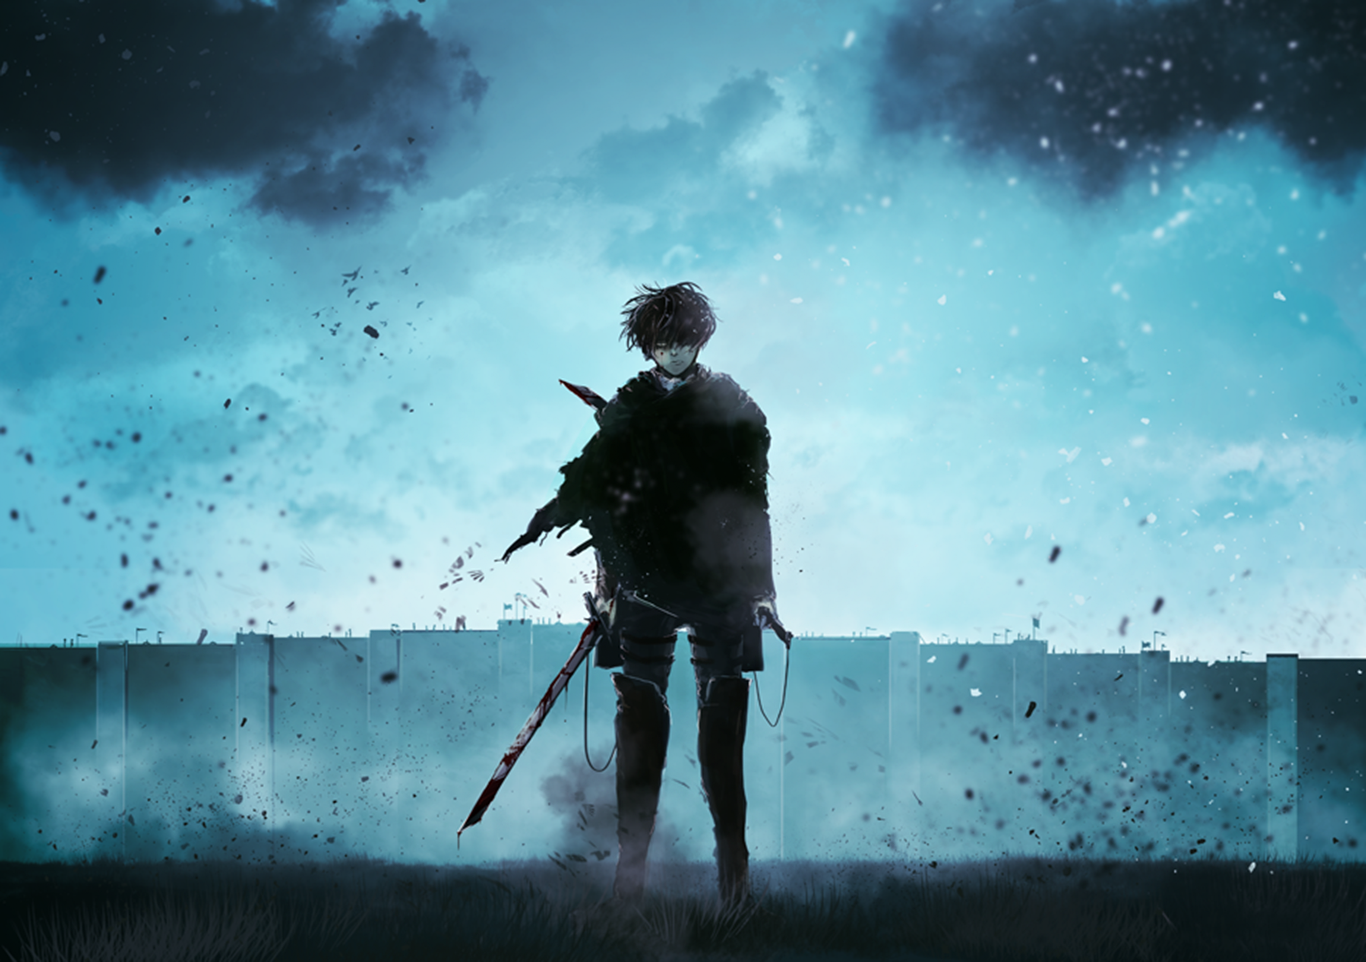 Anime Attack On Titan Levi Ackerman Wallpaper attack on